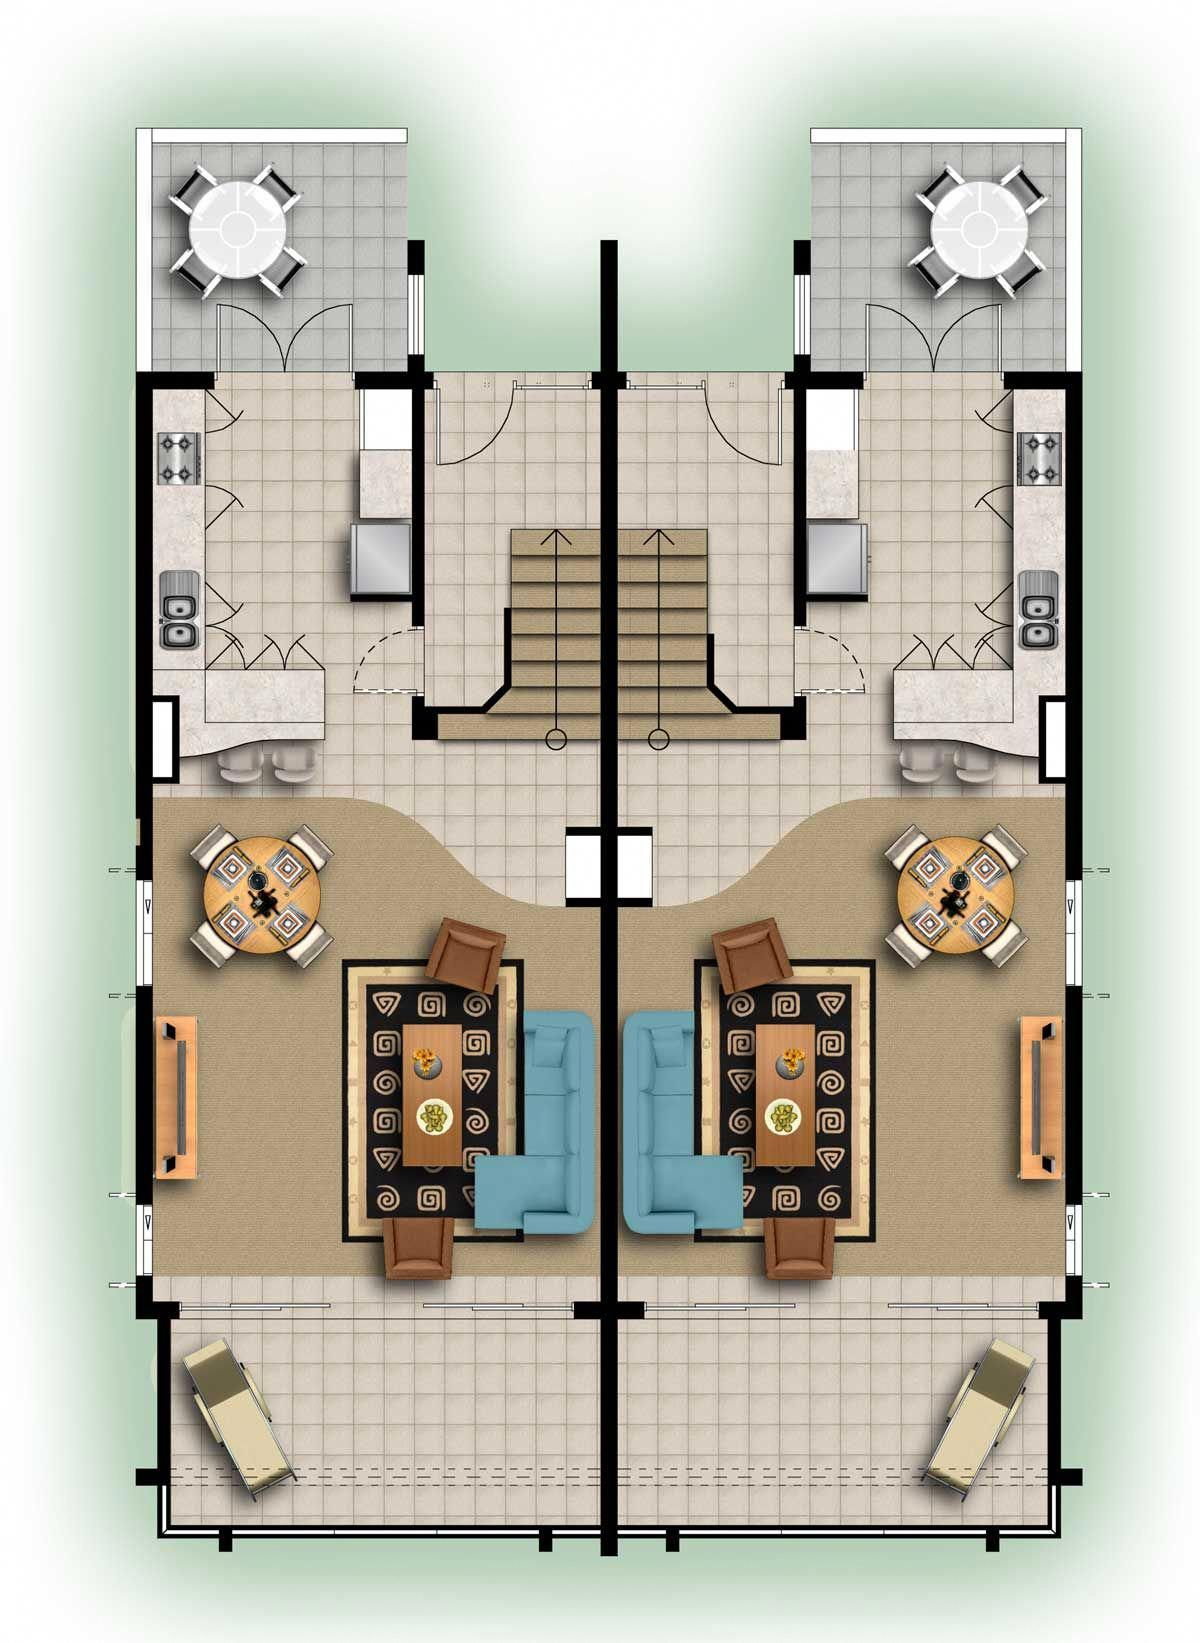 Android App At Direct From The Designers House Plans We Offer The Most Popular Online Collection O Home Design Floor Plans Floor Plan Design House Floor Design